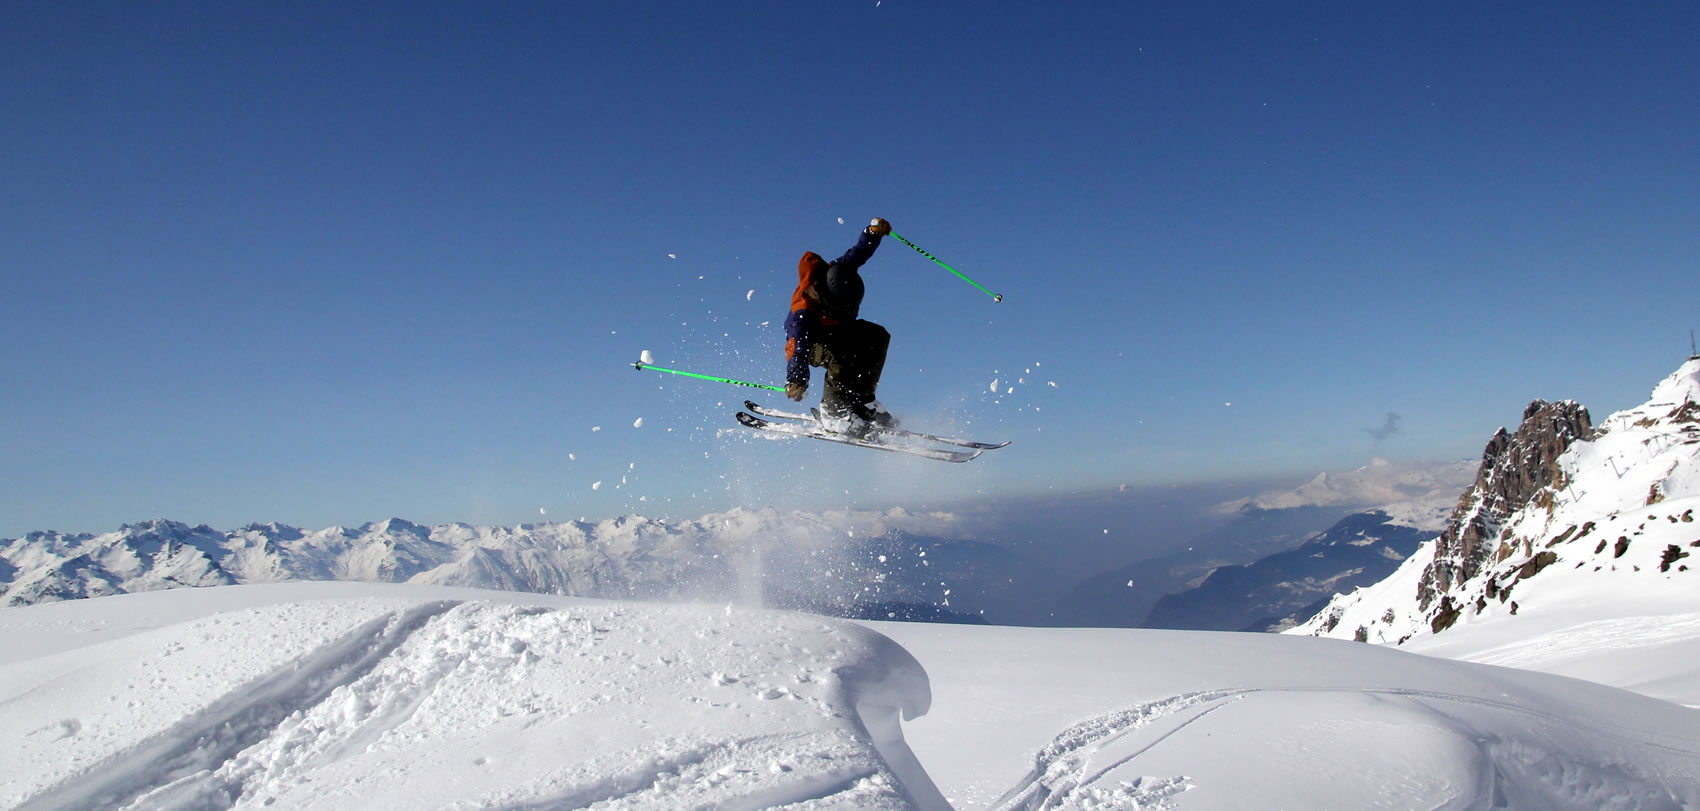 The adventure seeker - becoming a snowboard, ski and surfing instructor - image courtesy of the Ticket to Ride Group